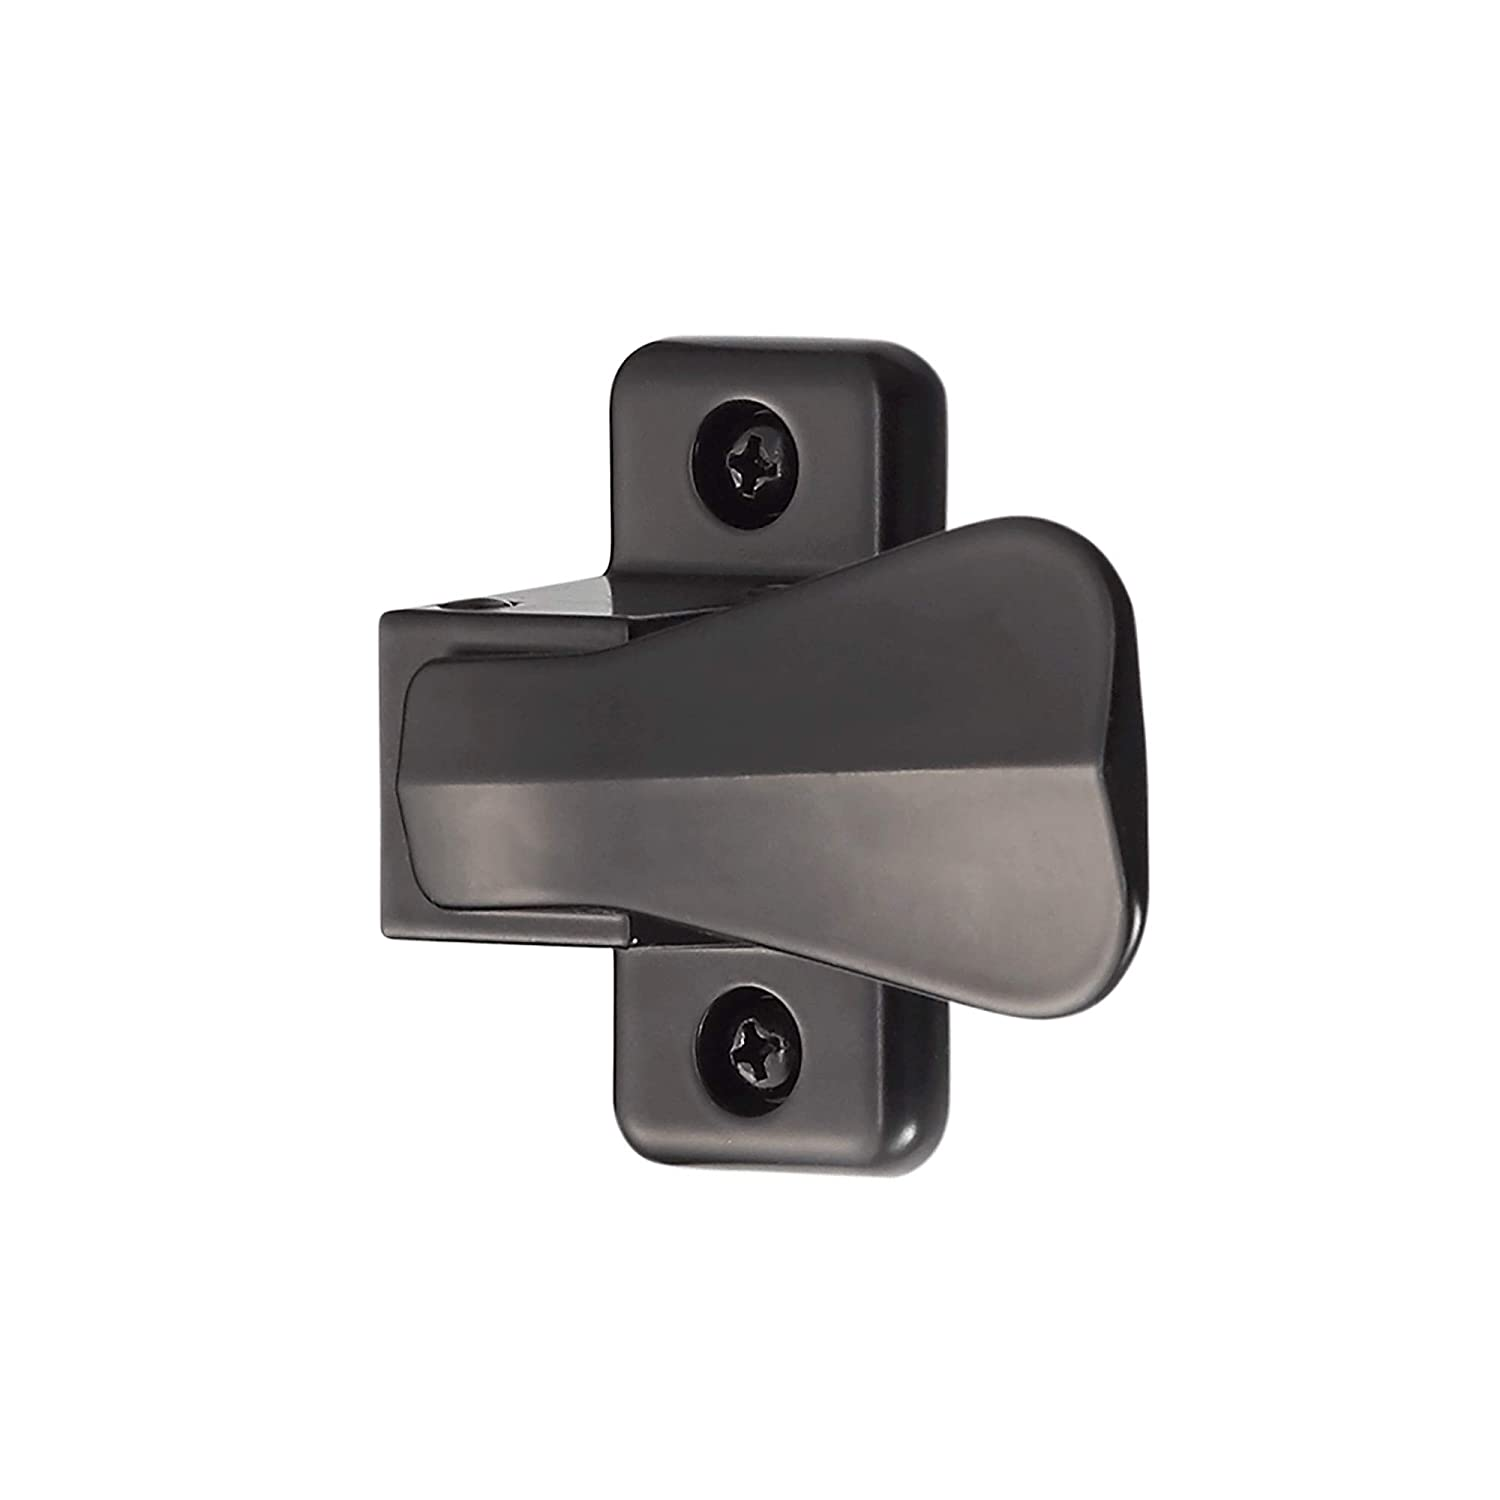 Ideal Security SK357BL 357 Inside Latch for Storm and Screen Doors Includes  Solid Nylon Strike, Black